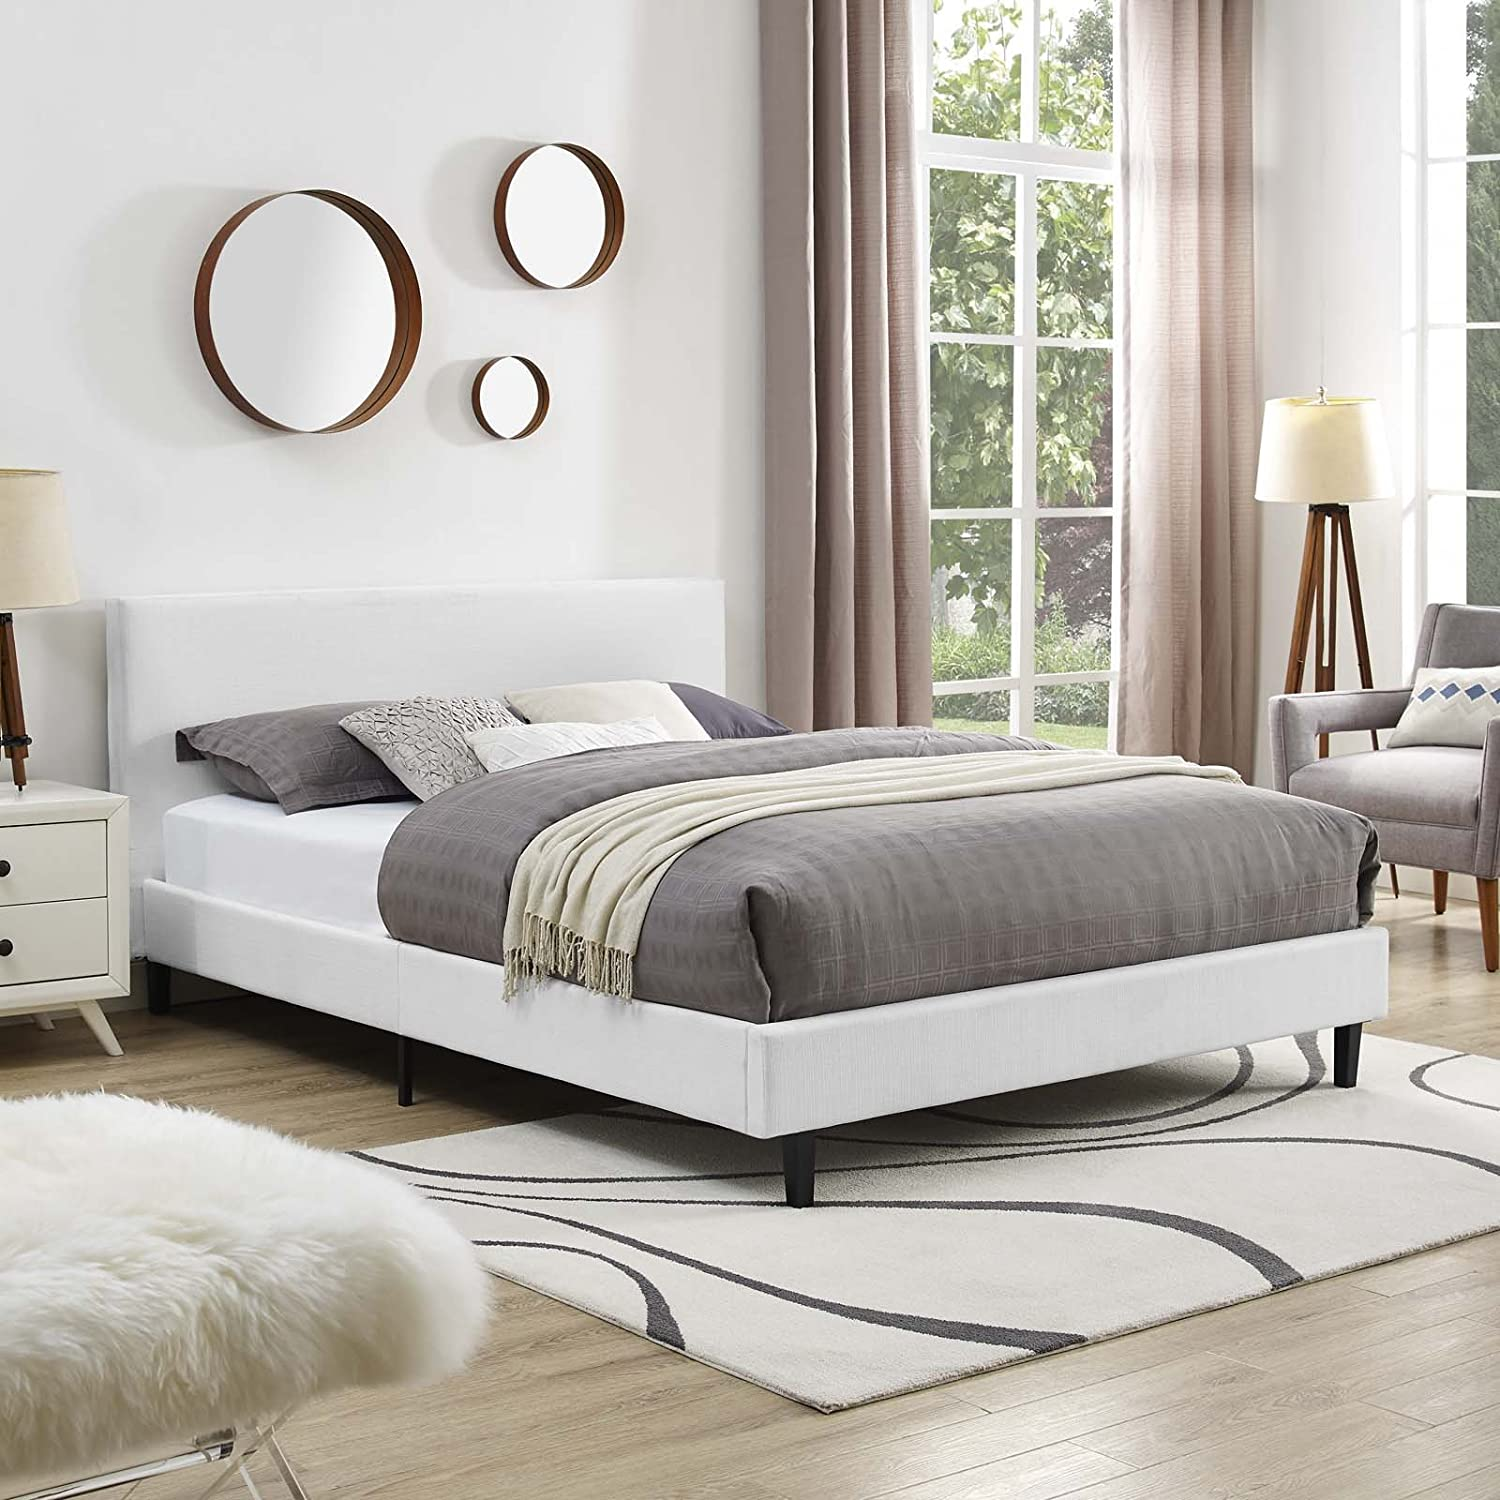 Modway Anya Upholstered White Platform Bed with Wood Slat Support in Full